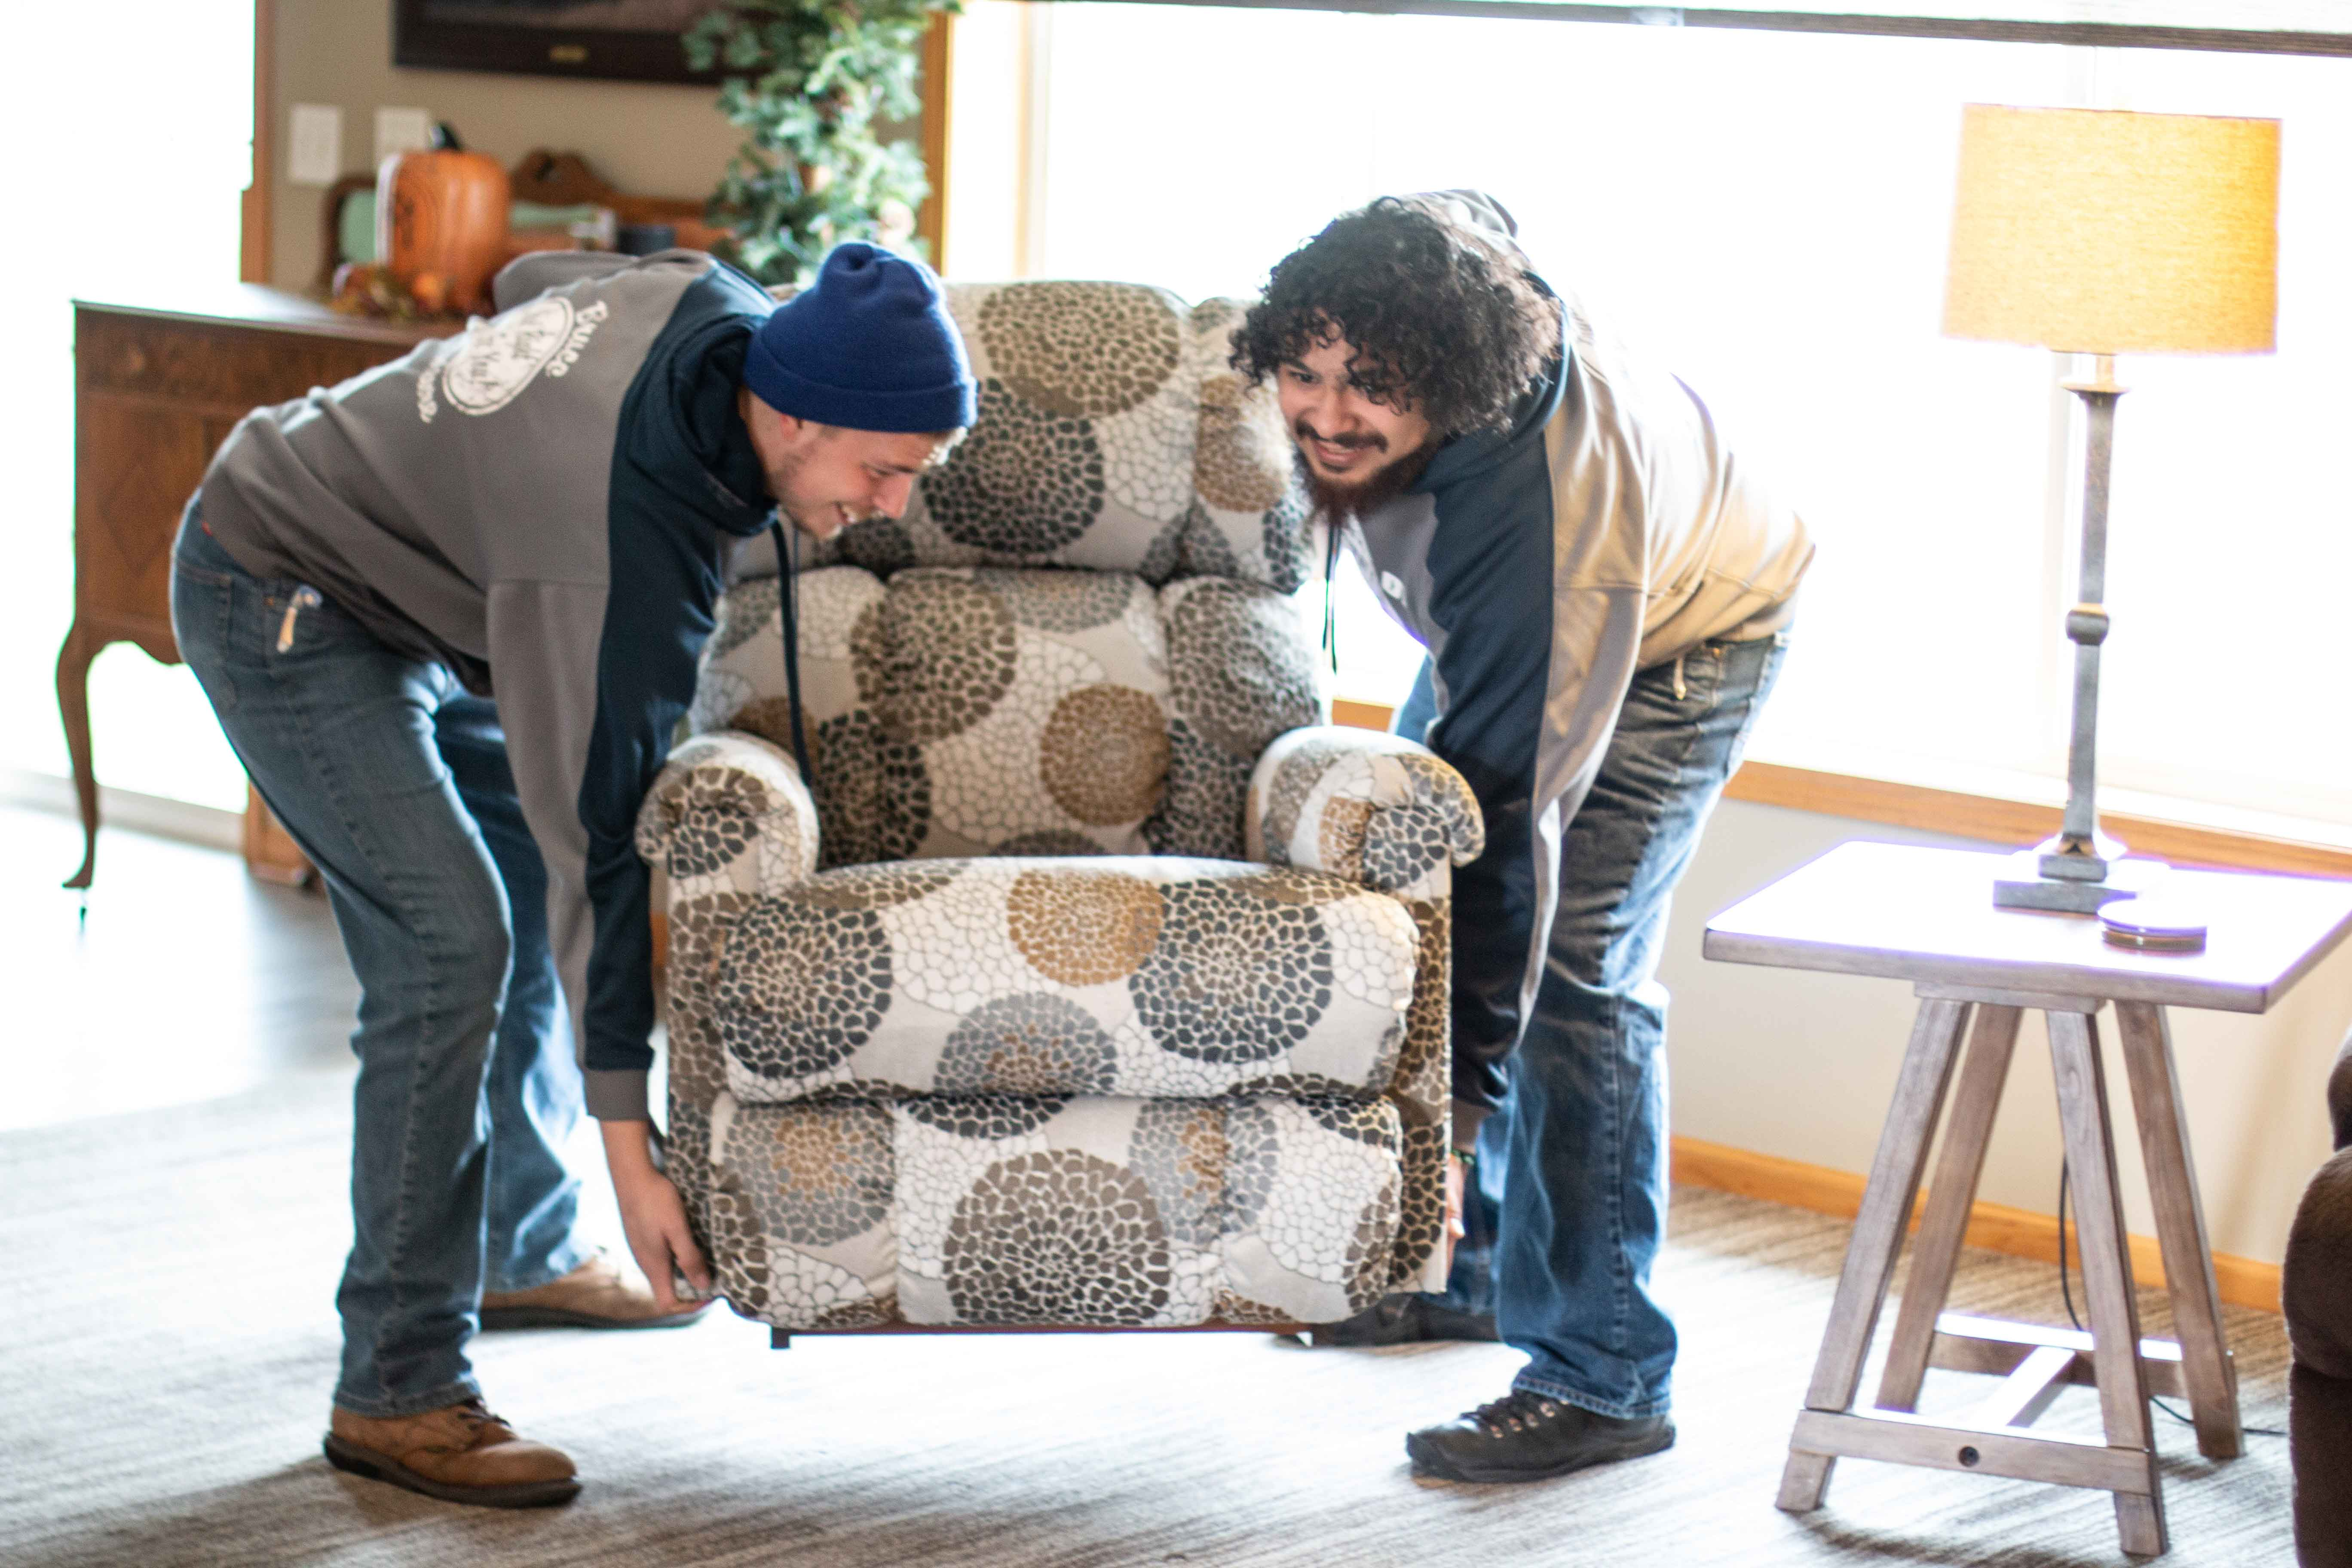 Bruce Furniture employees moving recliner